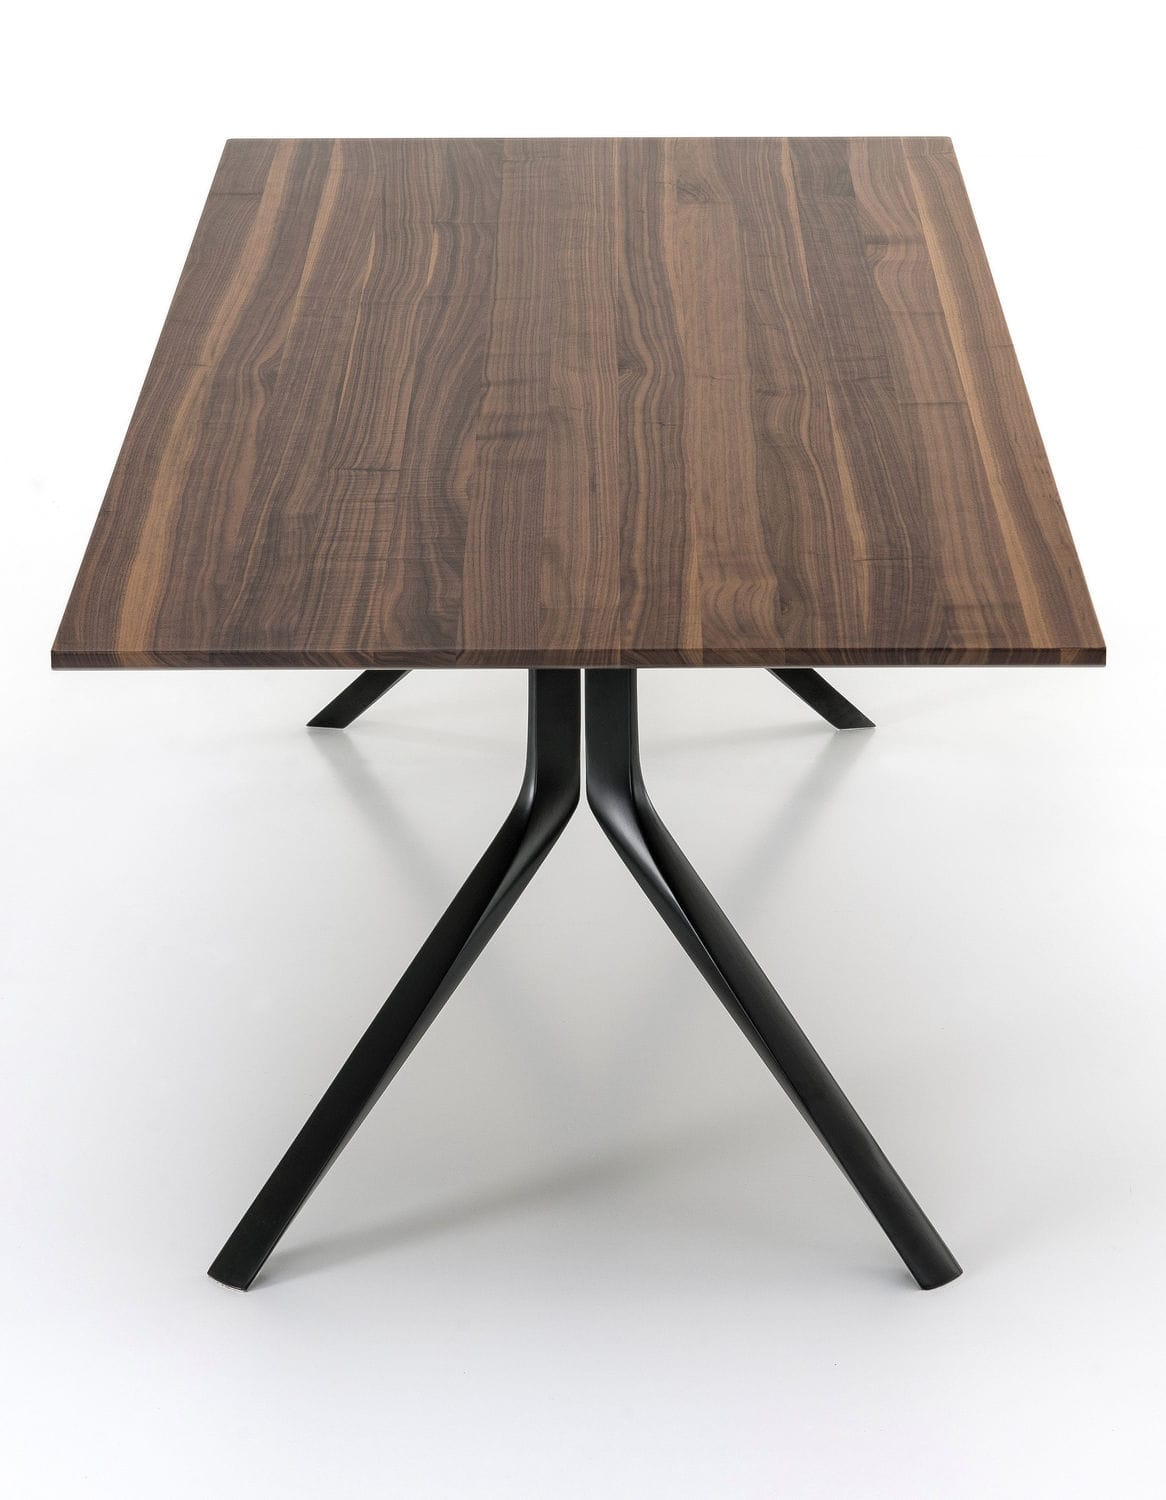 Lovely Contemporary Table / Wooden / Aluminum / Rectangular OOPS I DID IT AGAIN By  Monica Graffeo ...